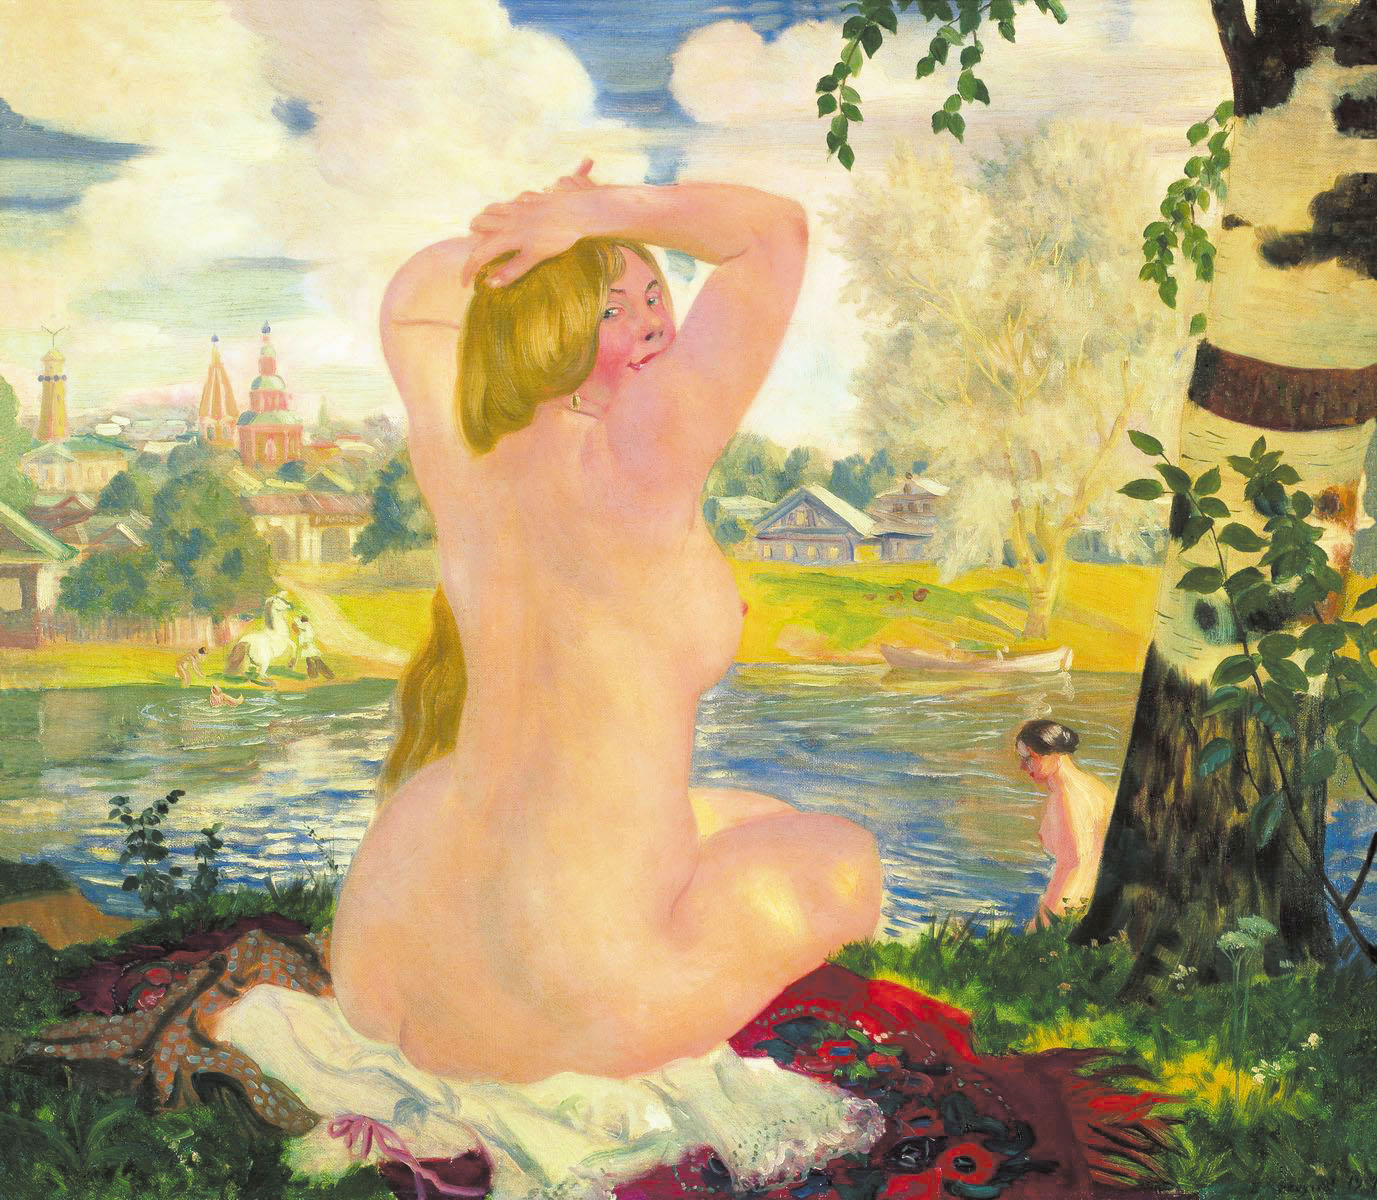 http://uploads7.wikipaintings.org/images/boris-kustodiev/bathing-1921.jpg